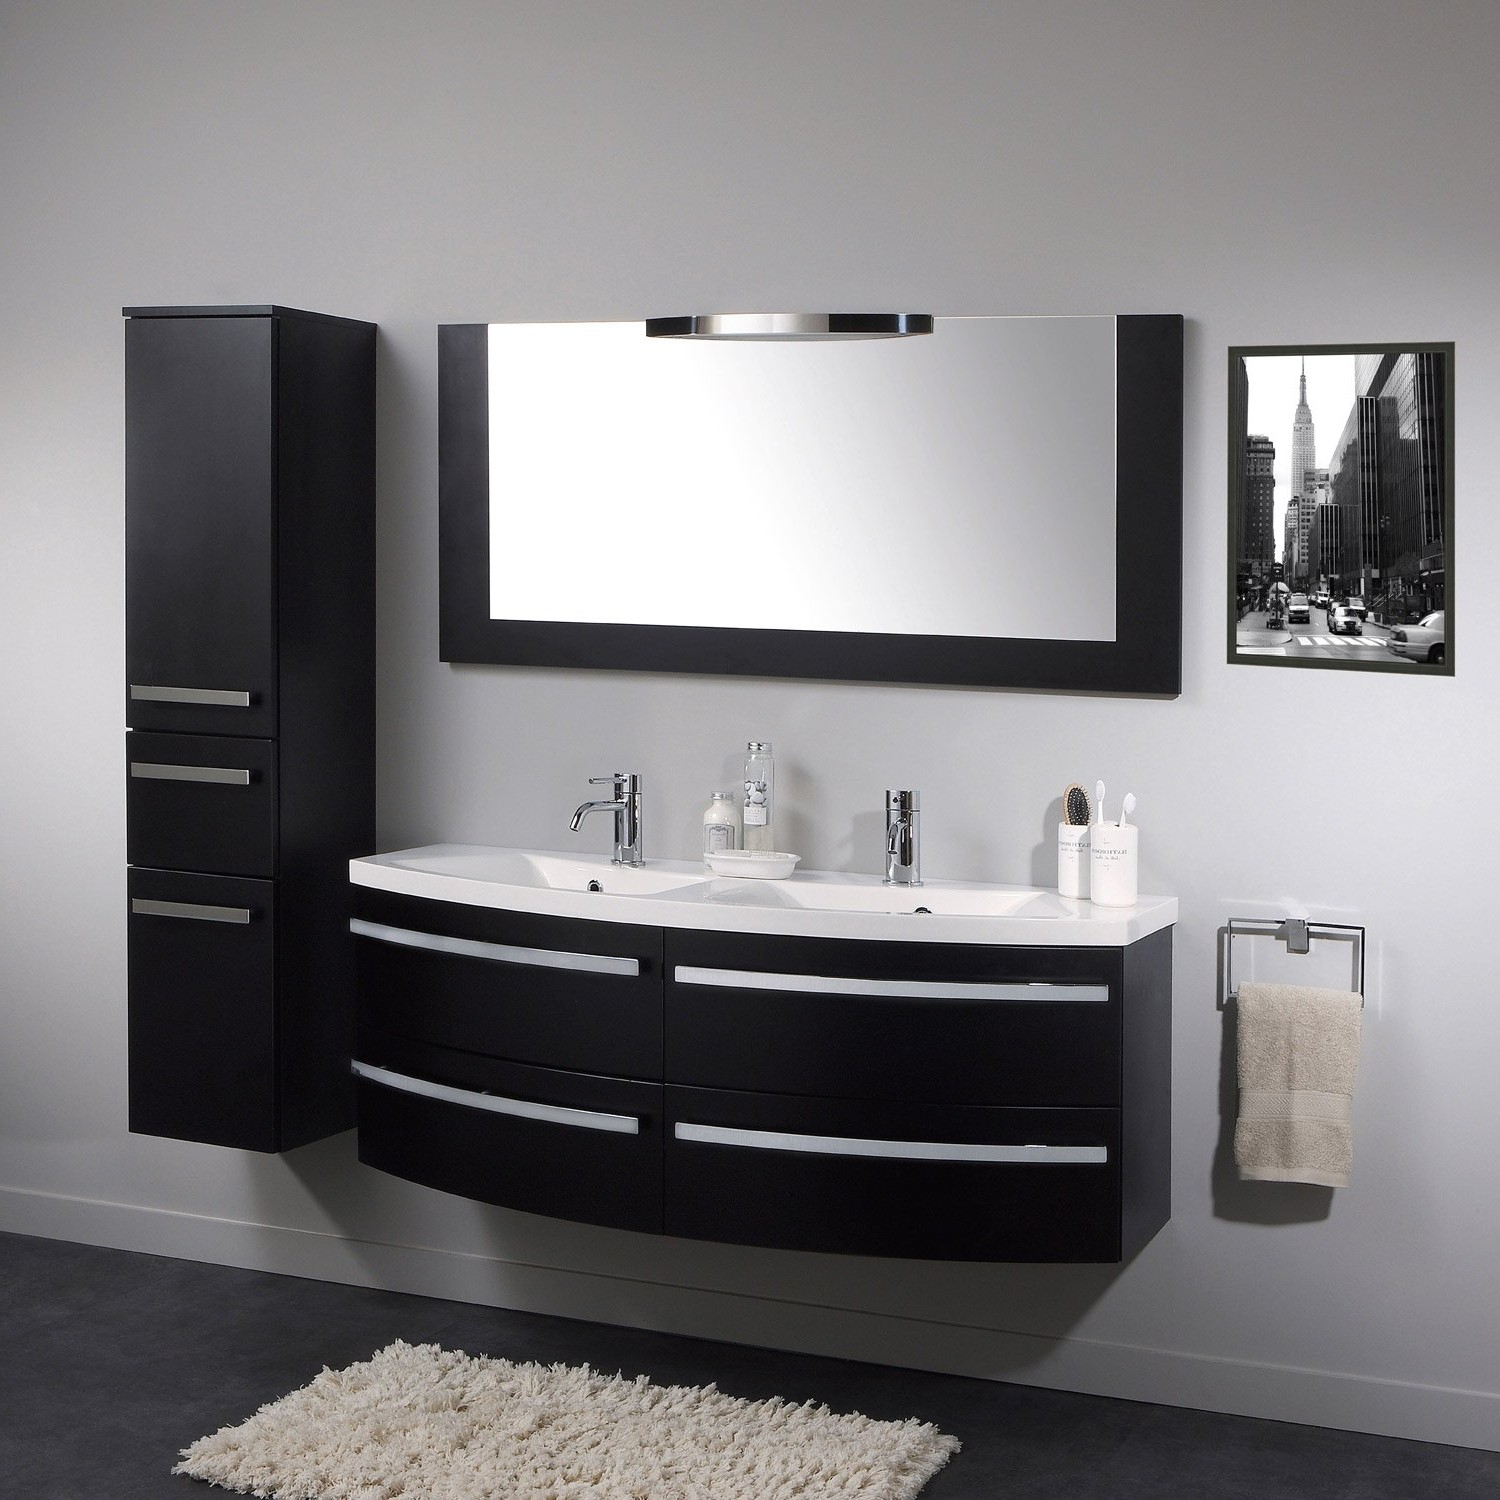 meuble salle de bain weng ikea salle de bain id es de d coration de maison qv9lpgyno3. Black Bedroom Furniture Sets. Home Design Ideas